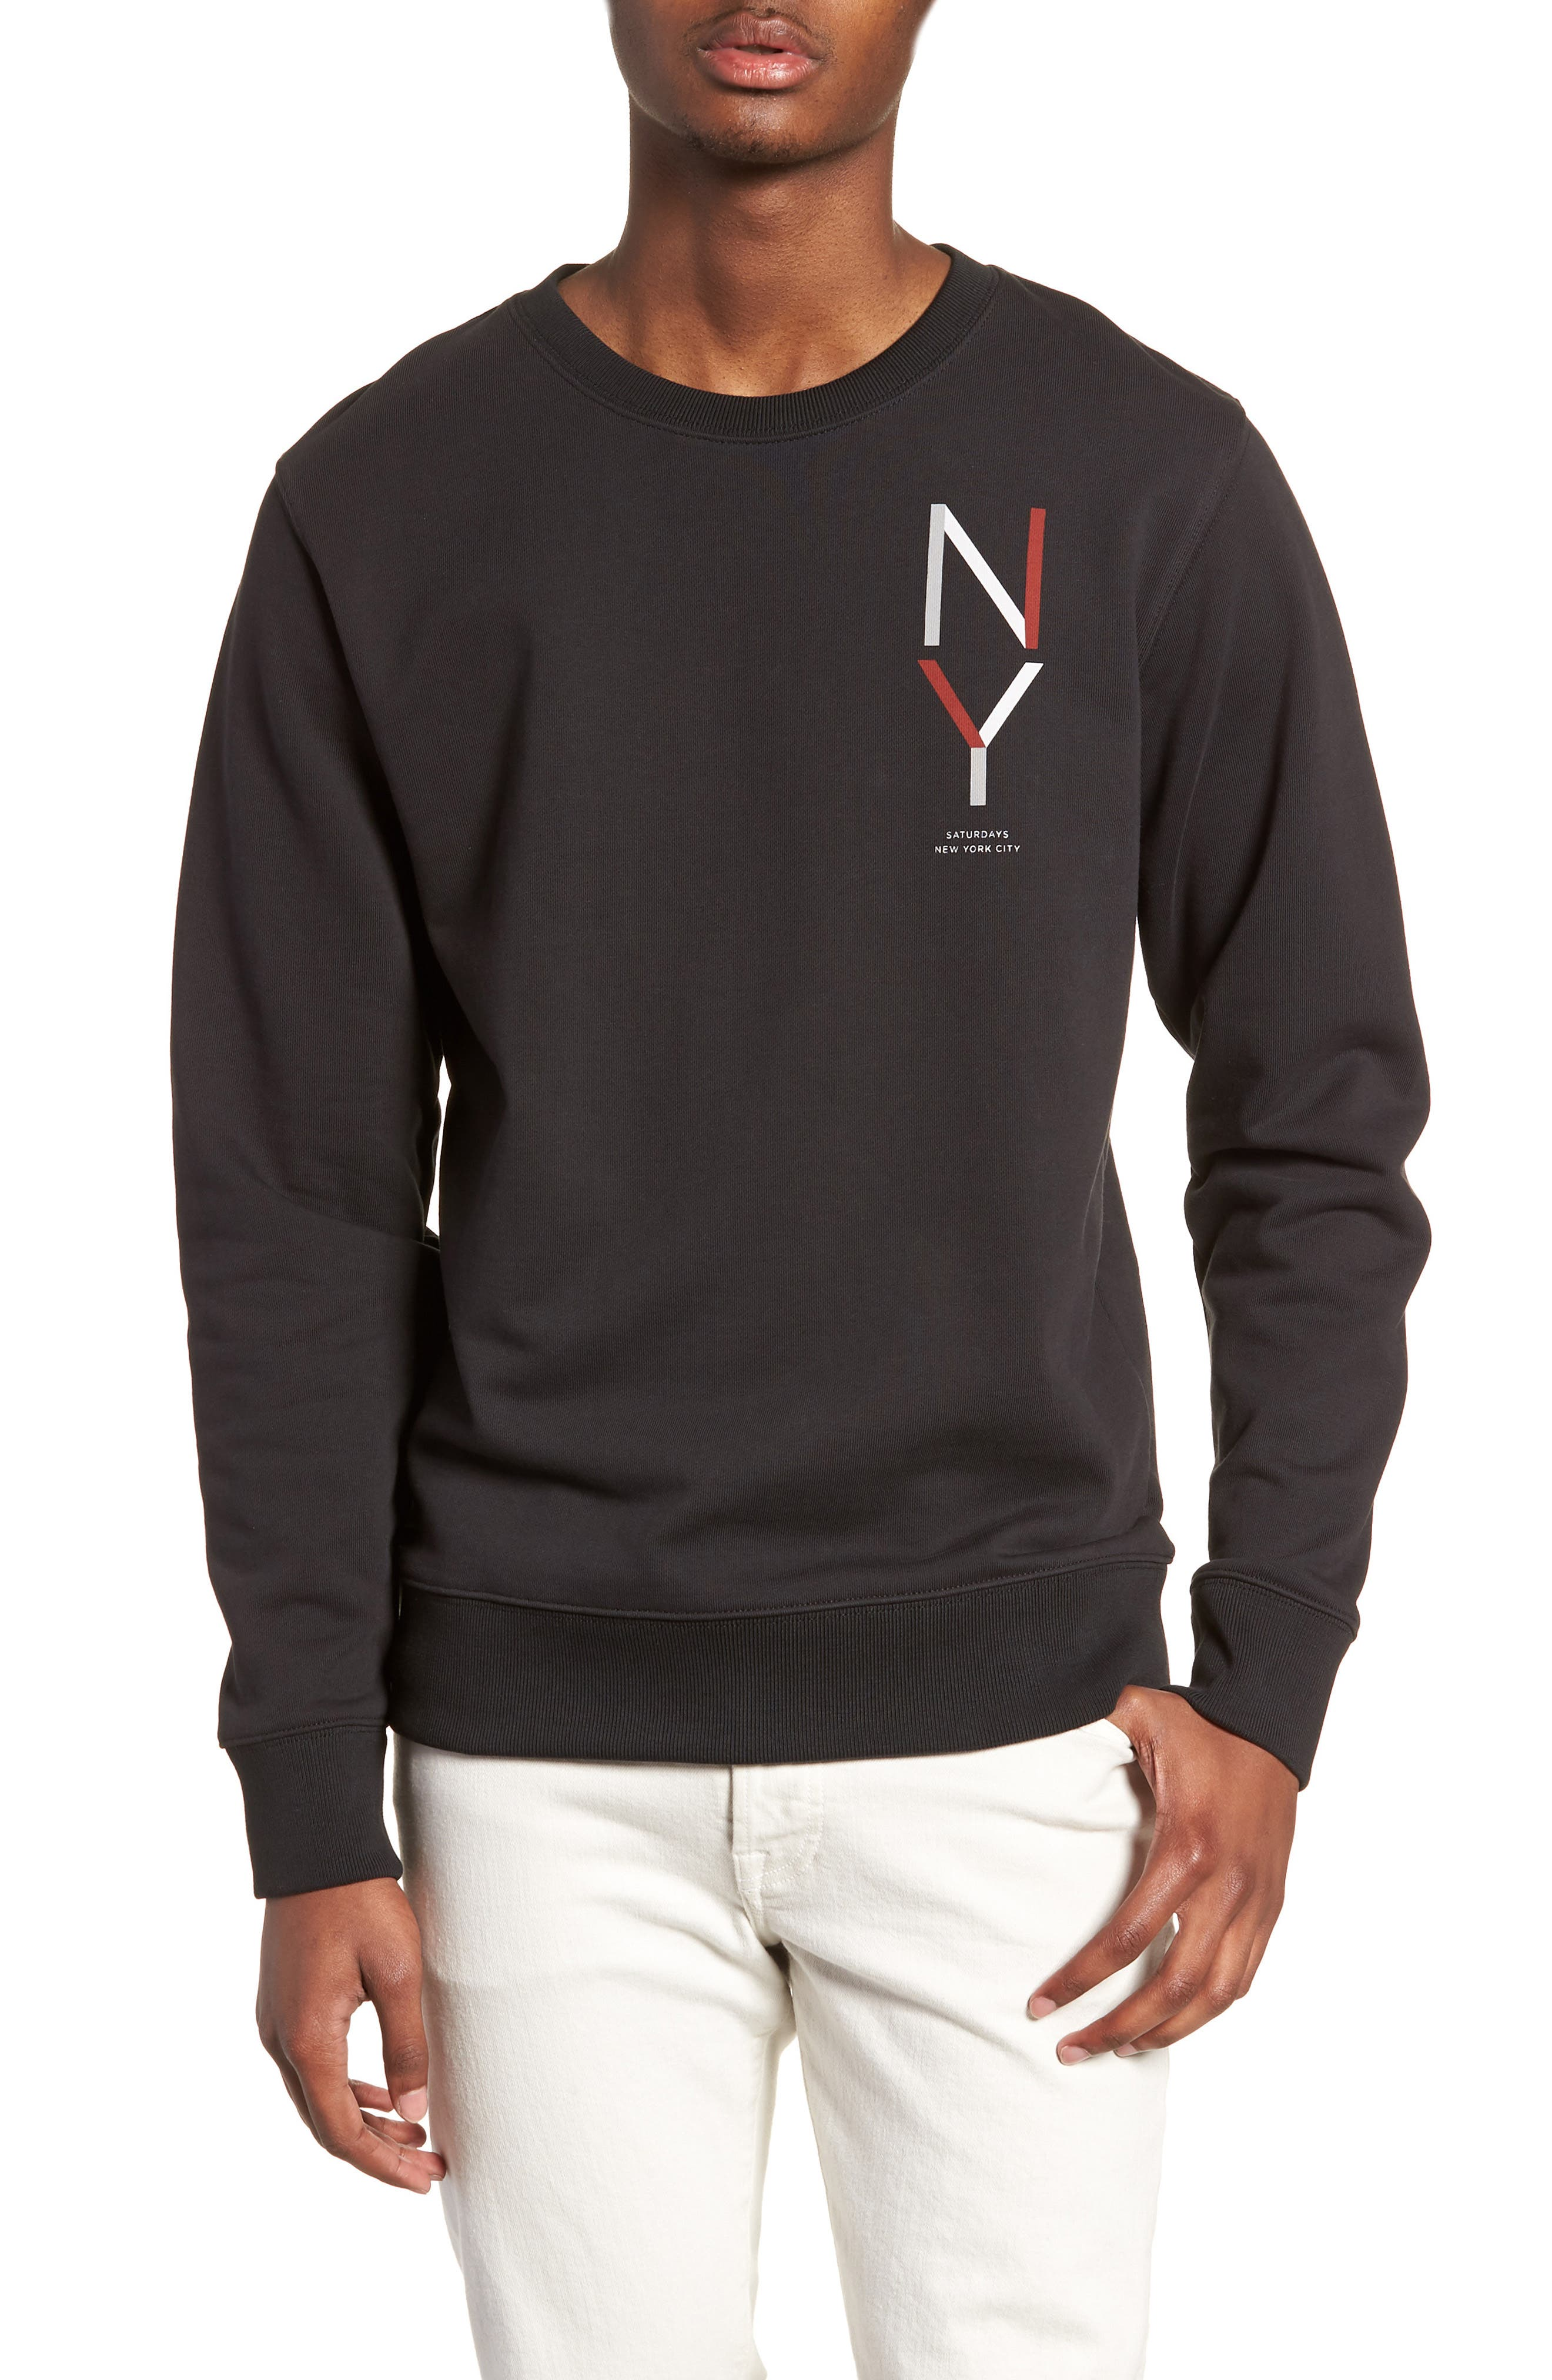 Bowery NY Sweatshirt,                         Main,                         color, Black